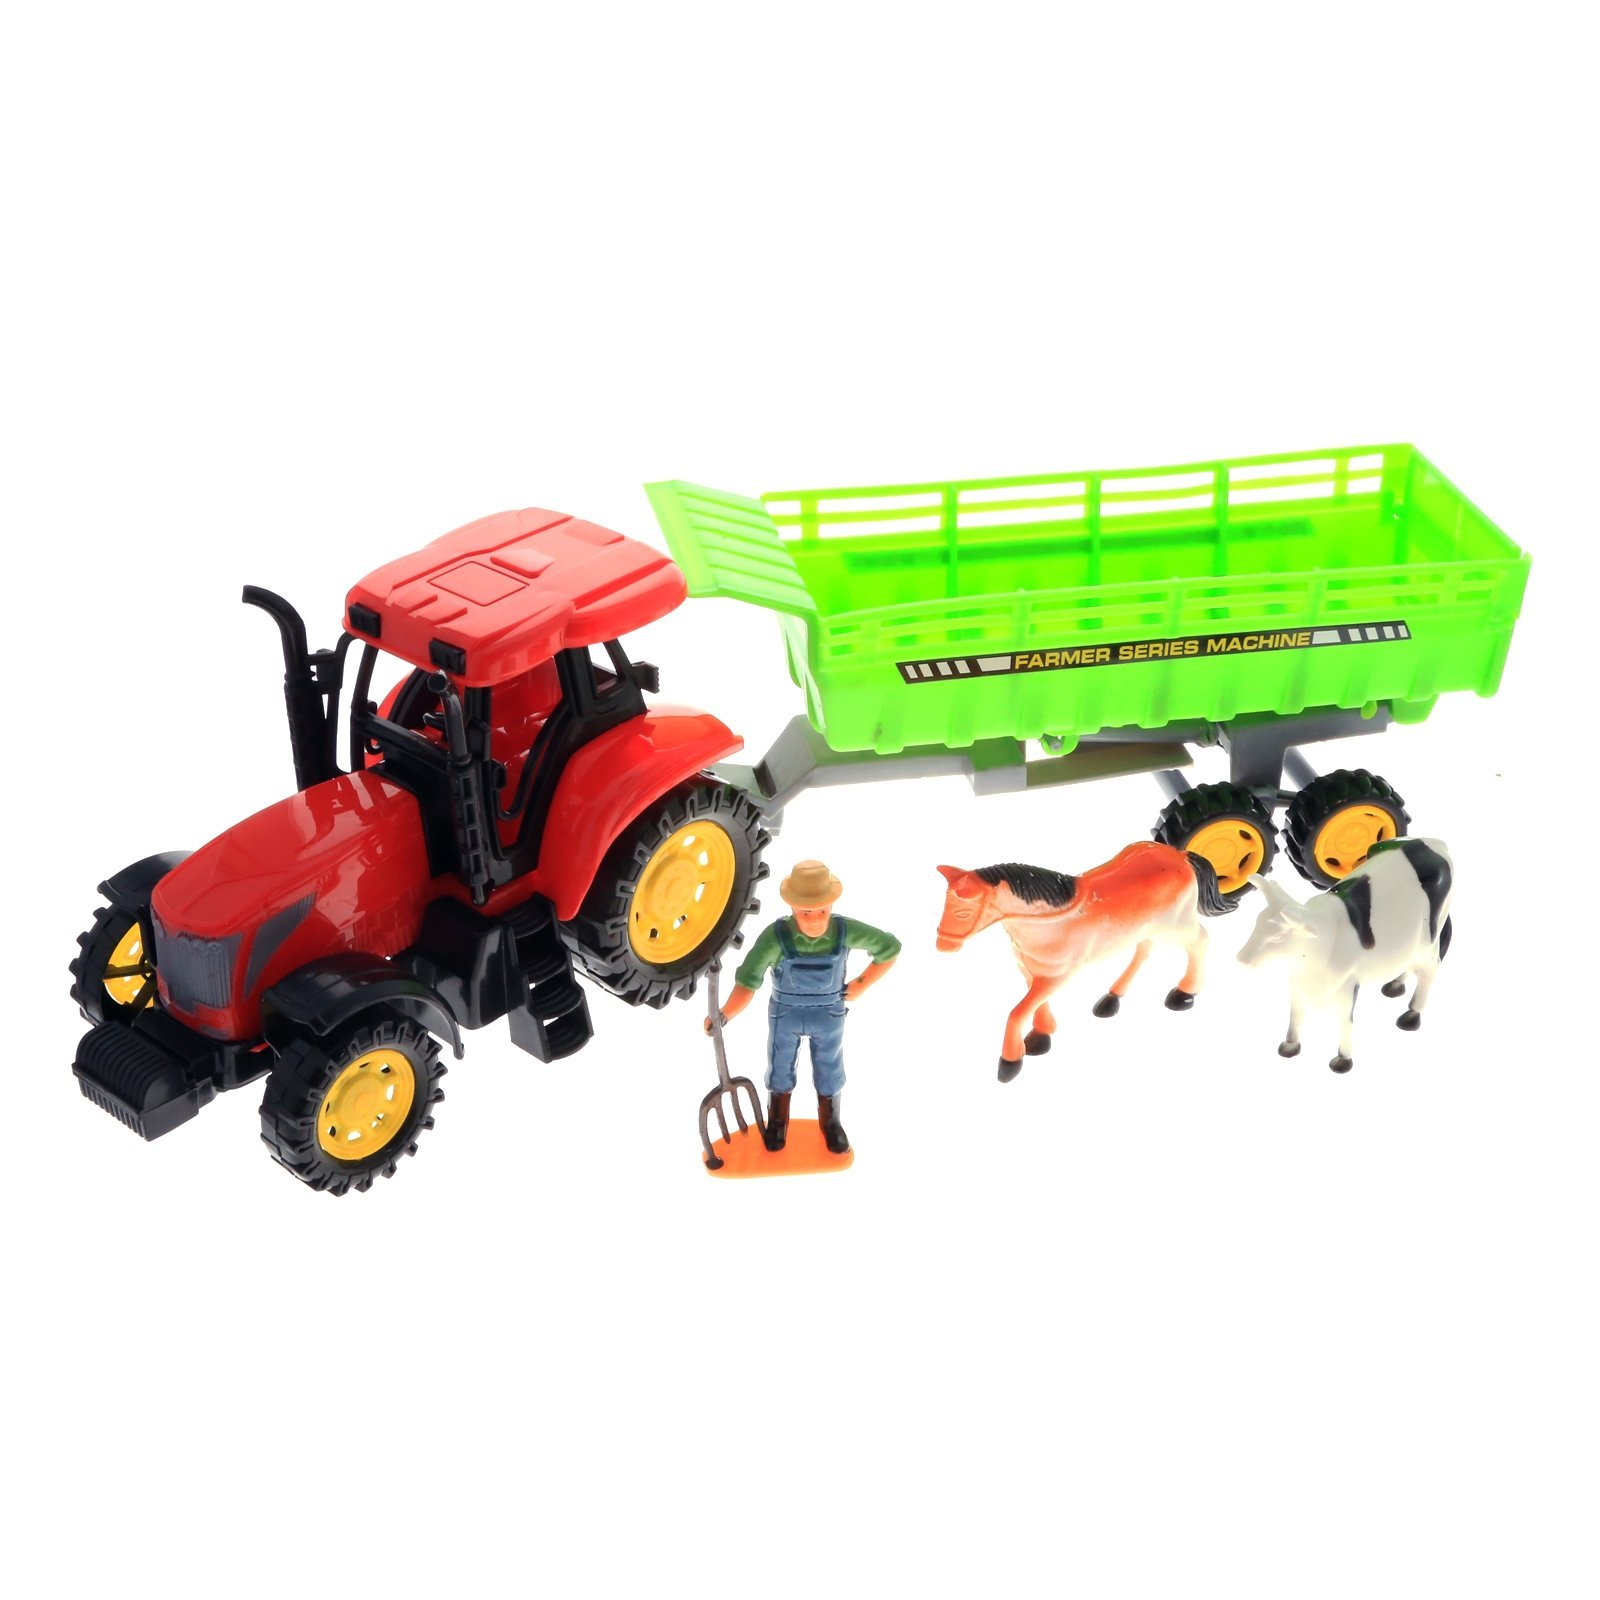 KidPlay Kids Friction Powered Farm Tractor Play Set Red Tractor Figurines